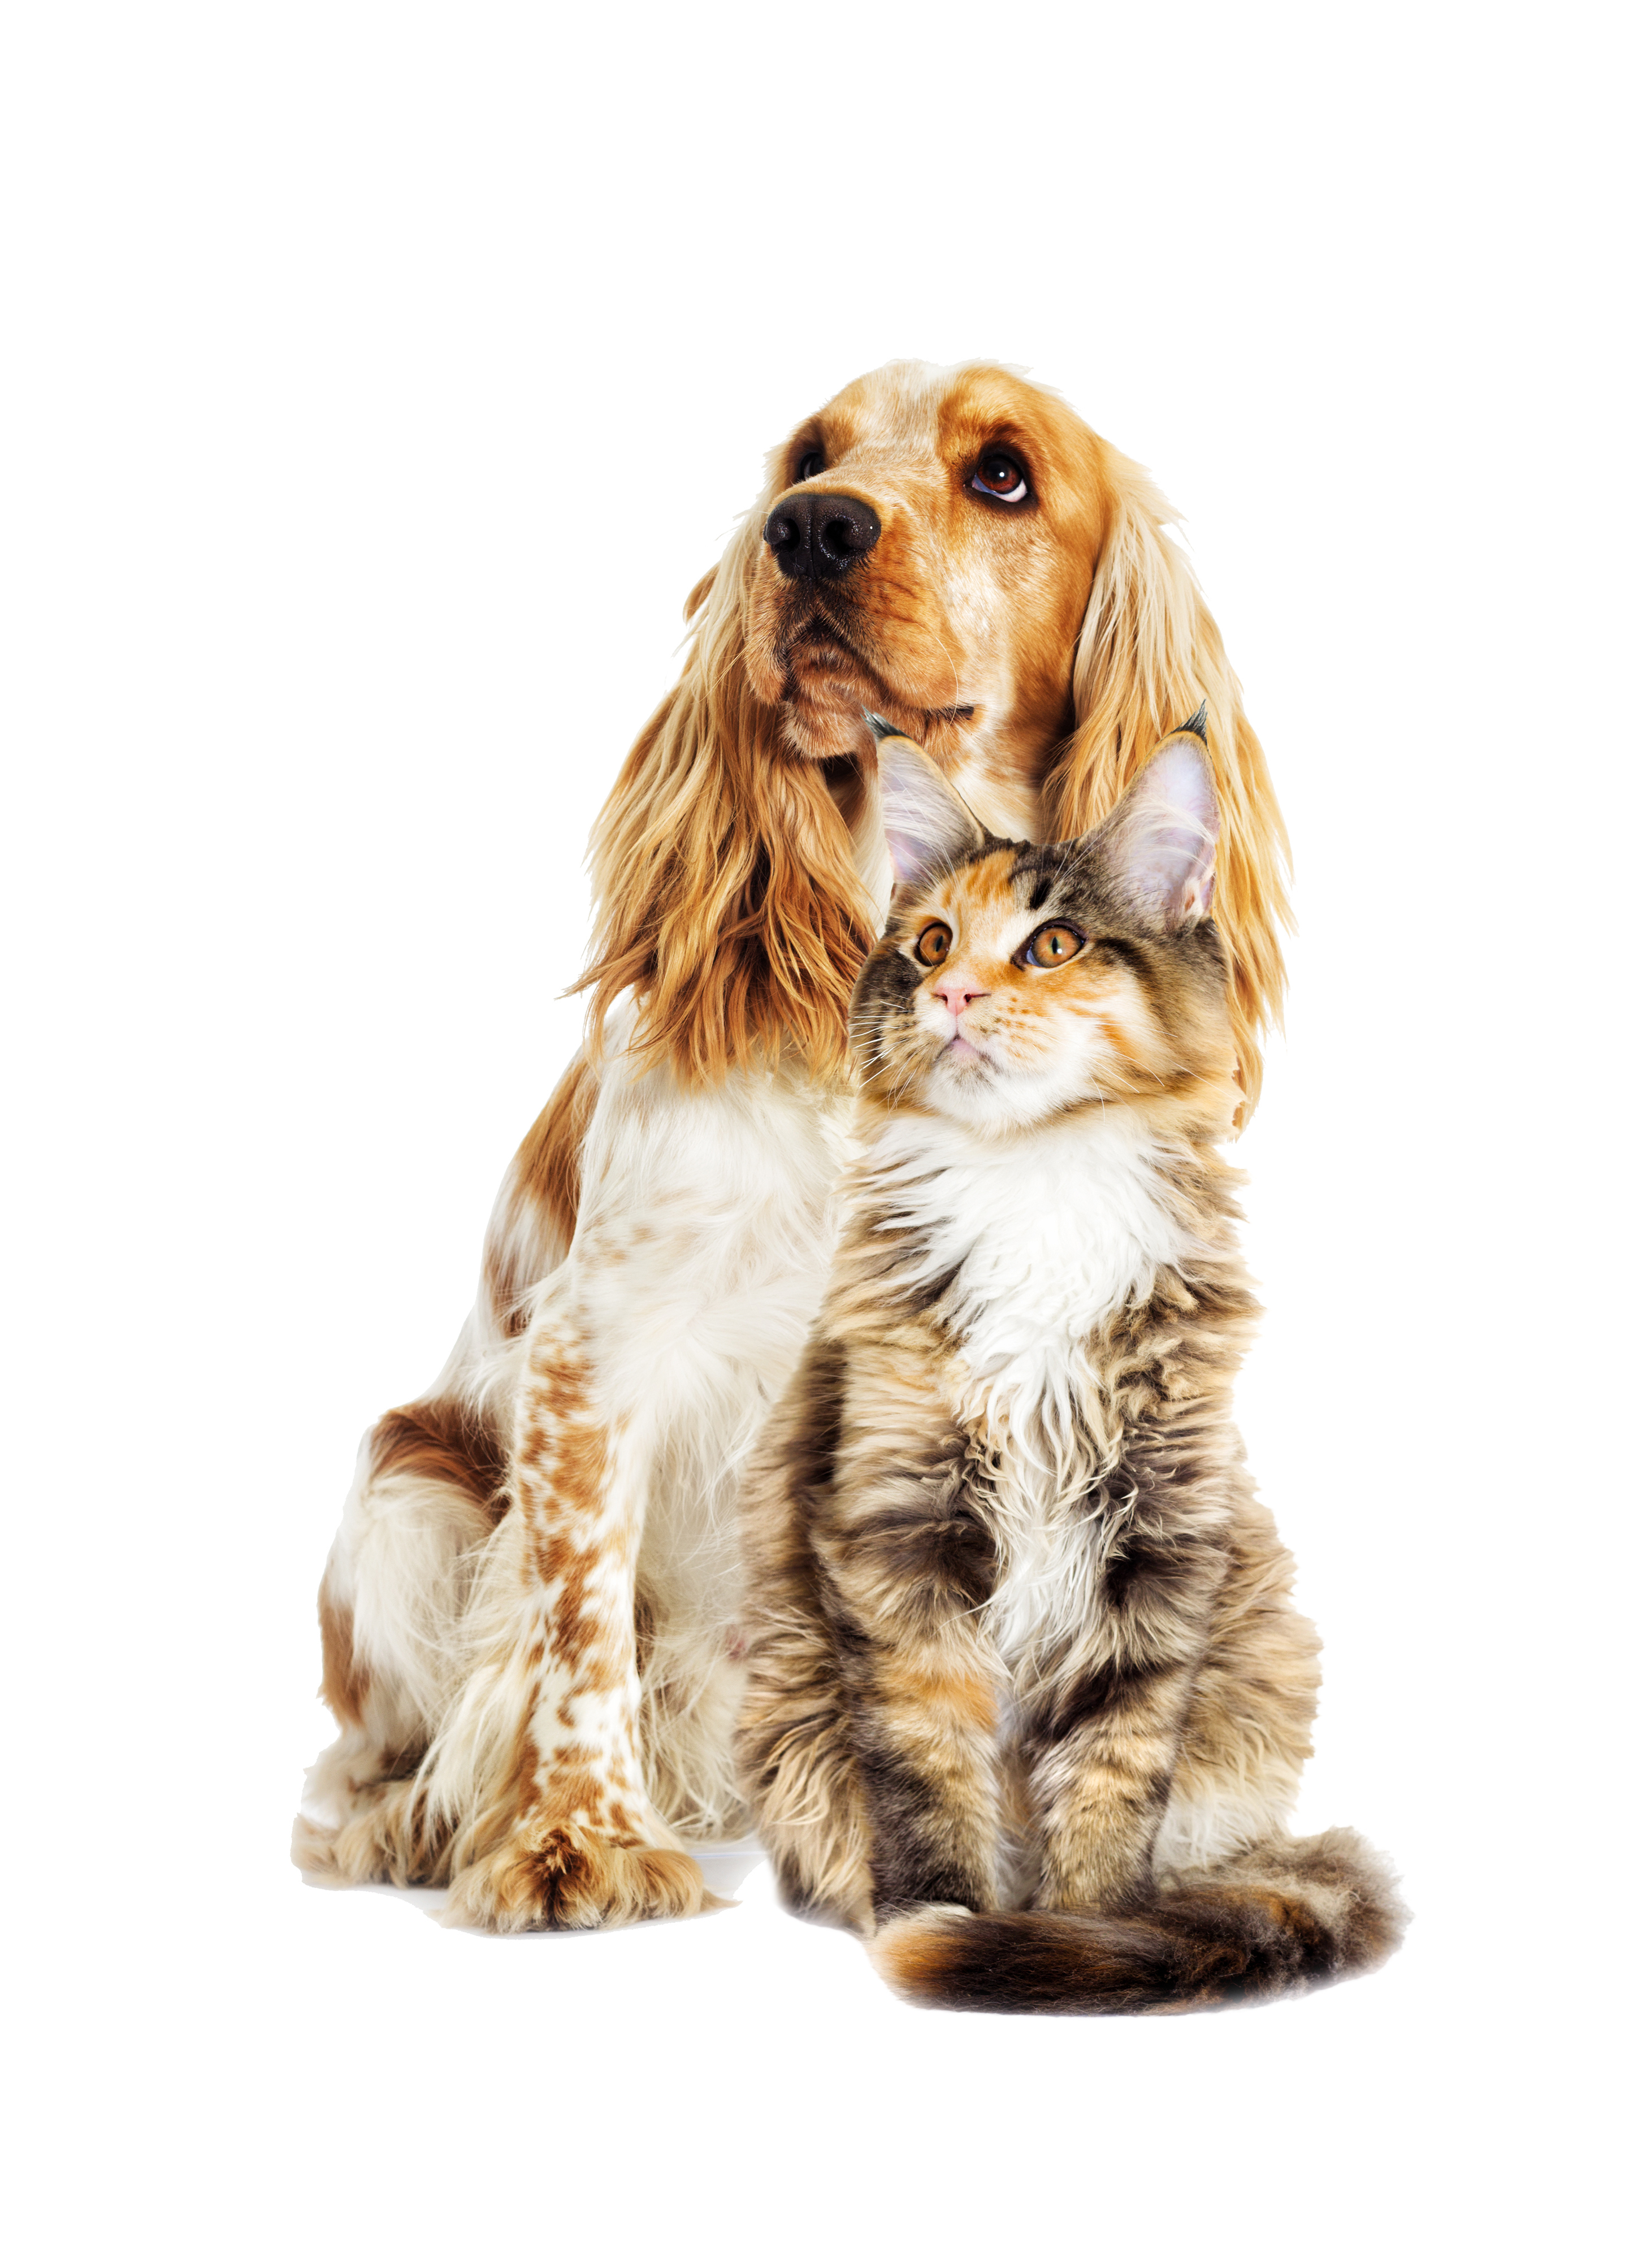 Dog and cat white background isolated image